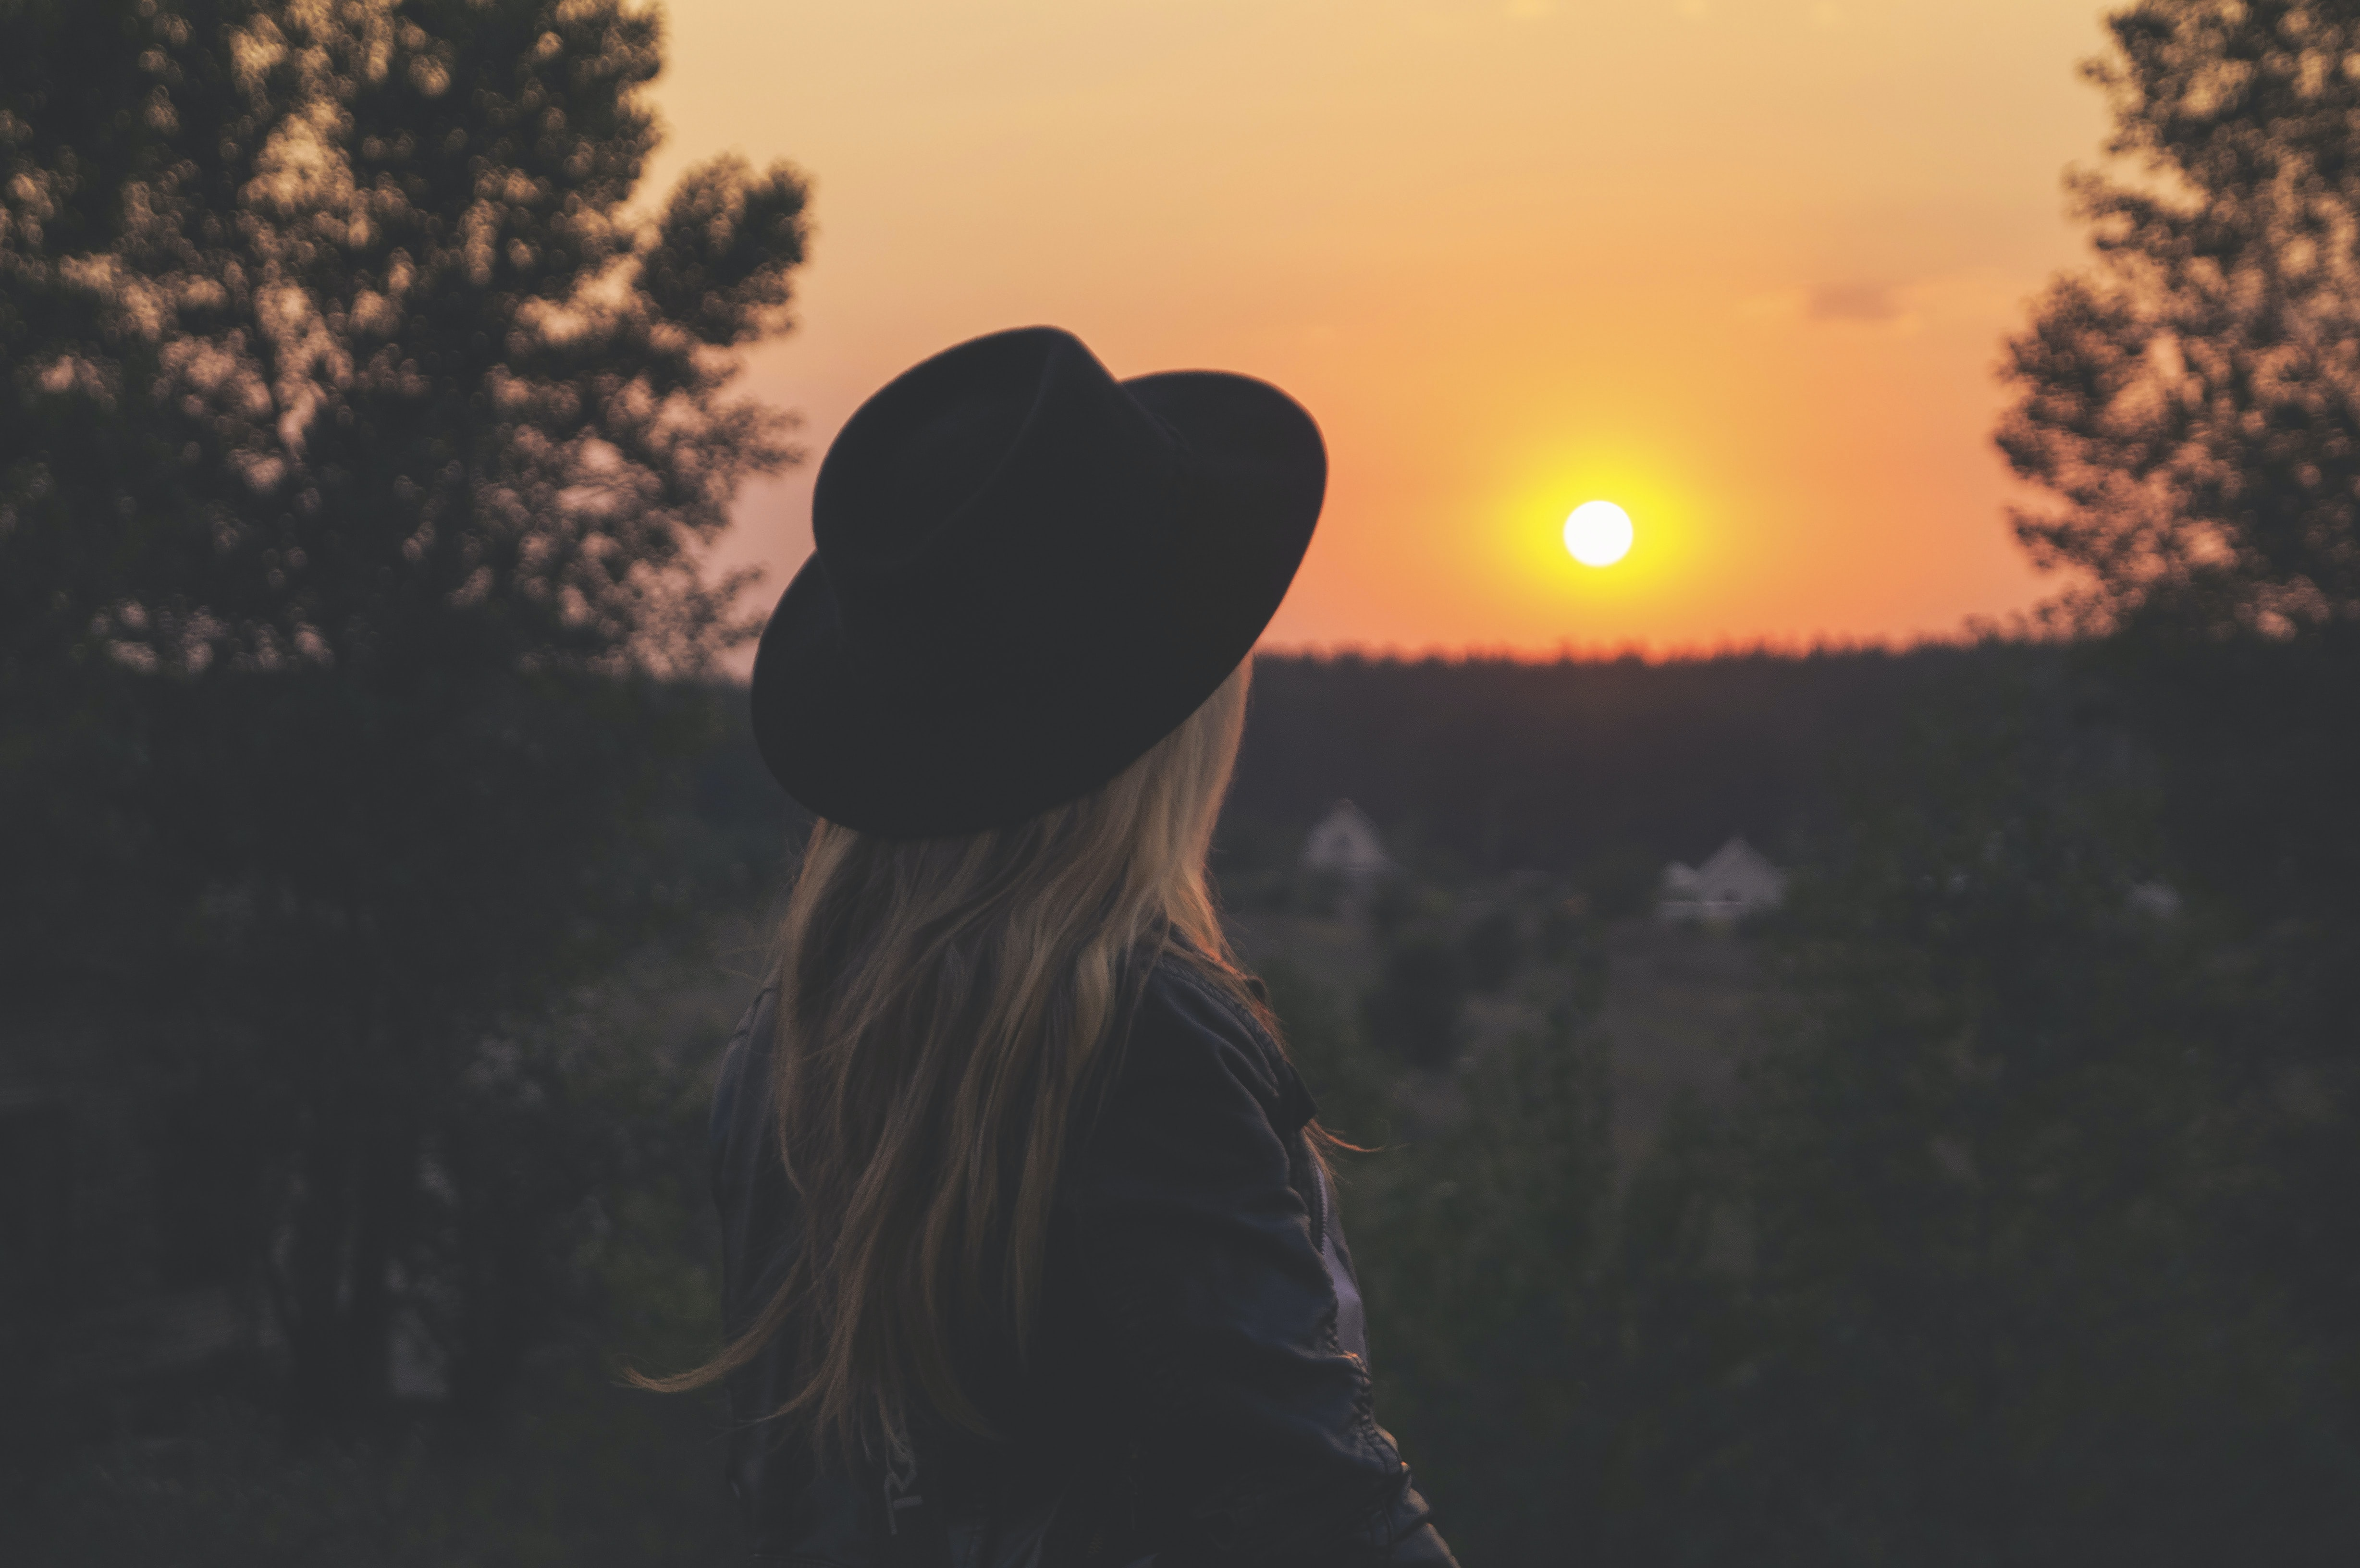 woman wearing black hat staring at sunset